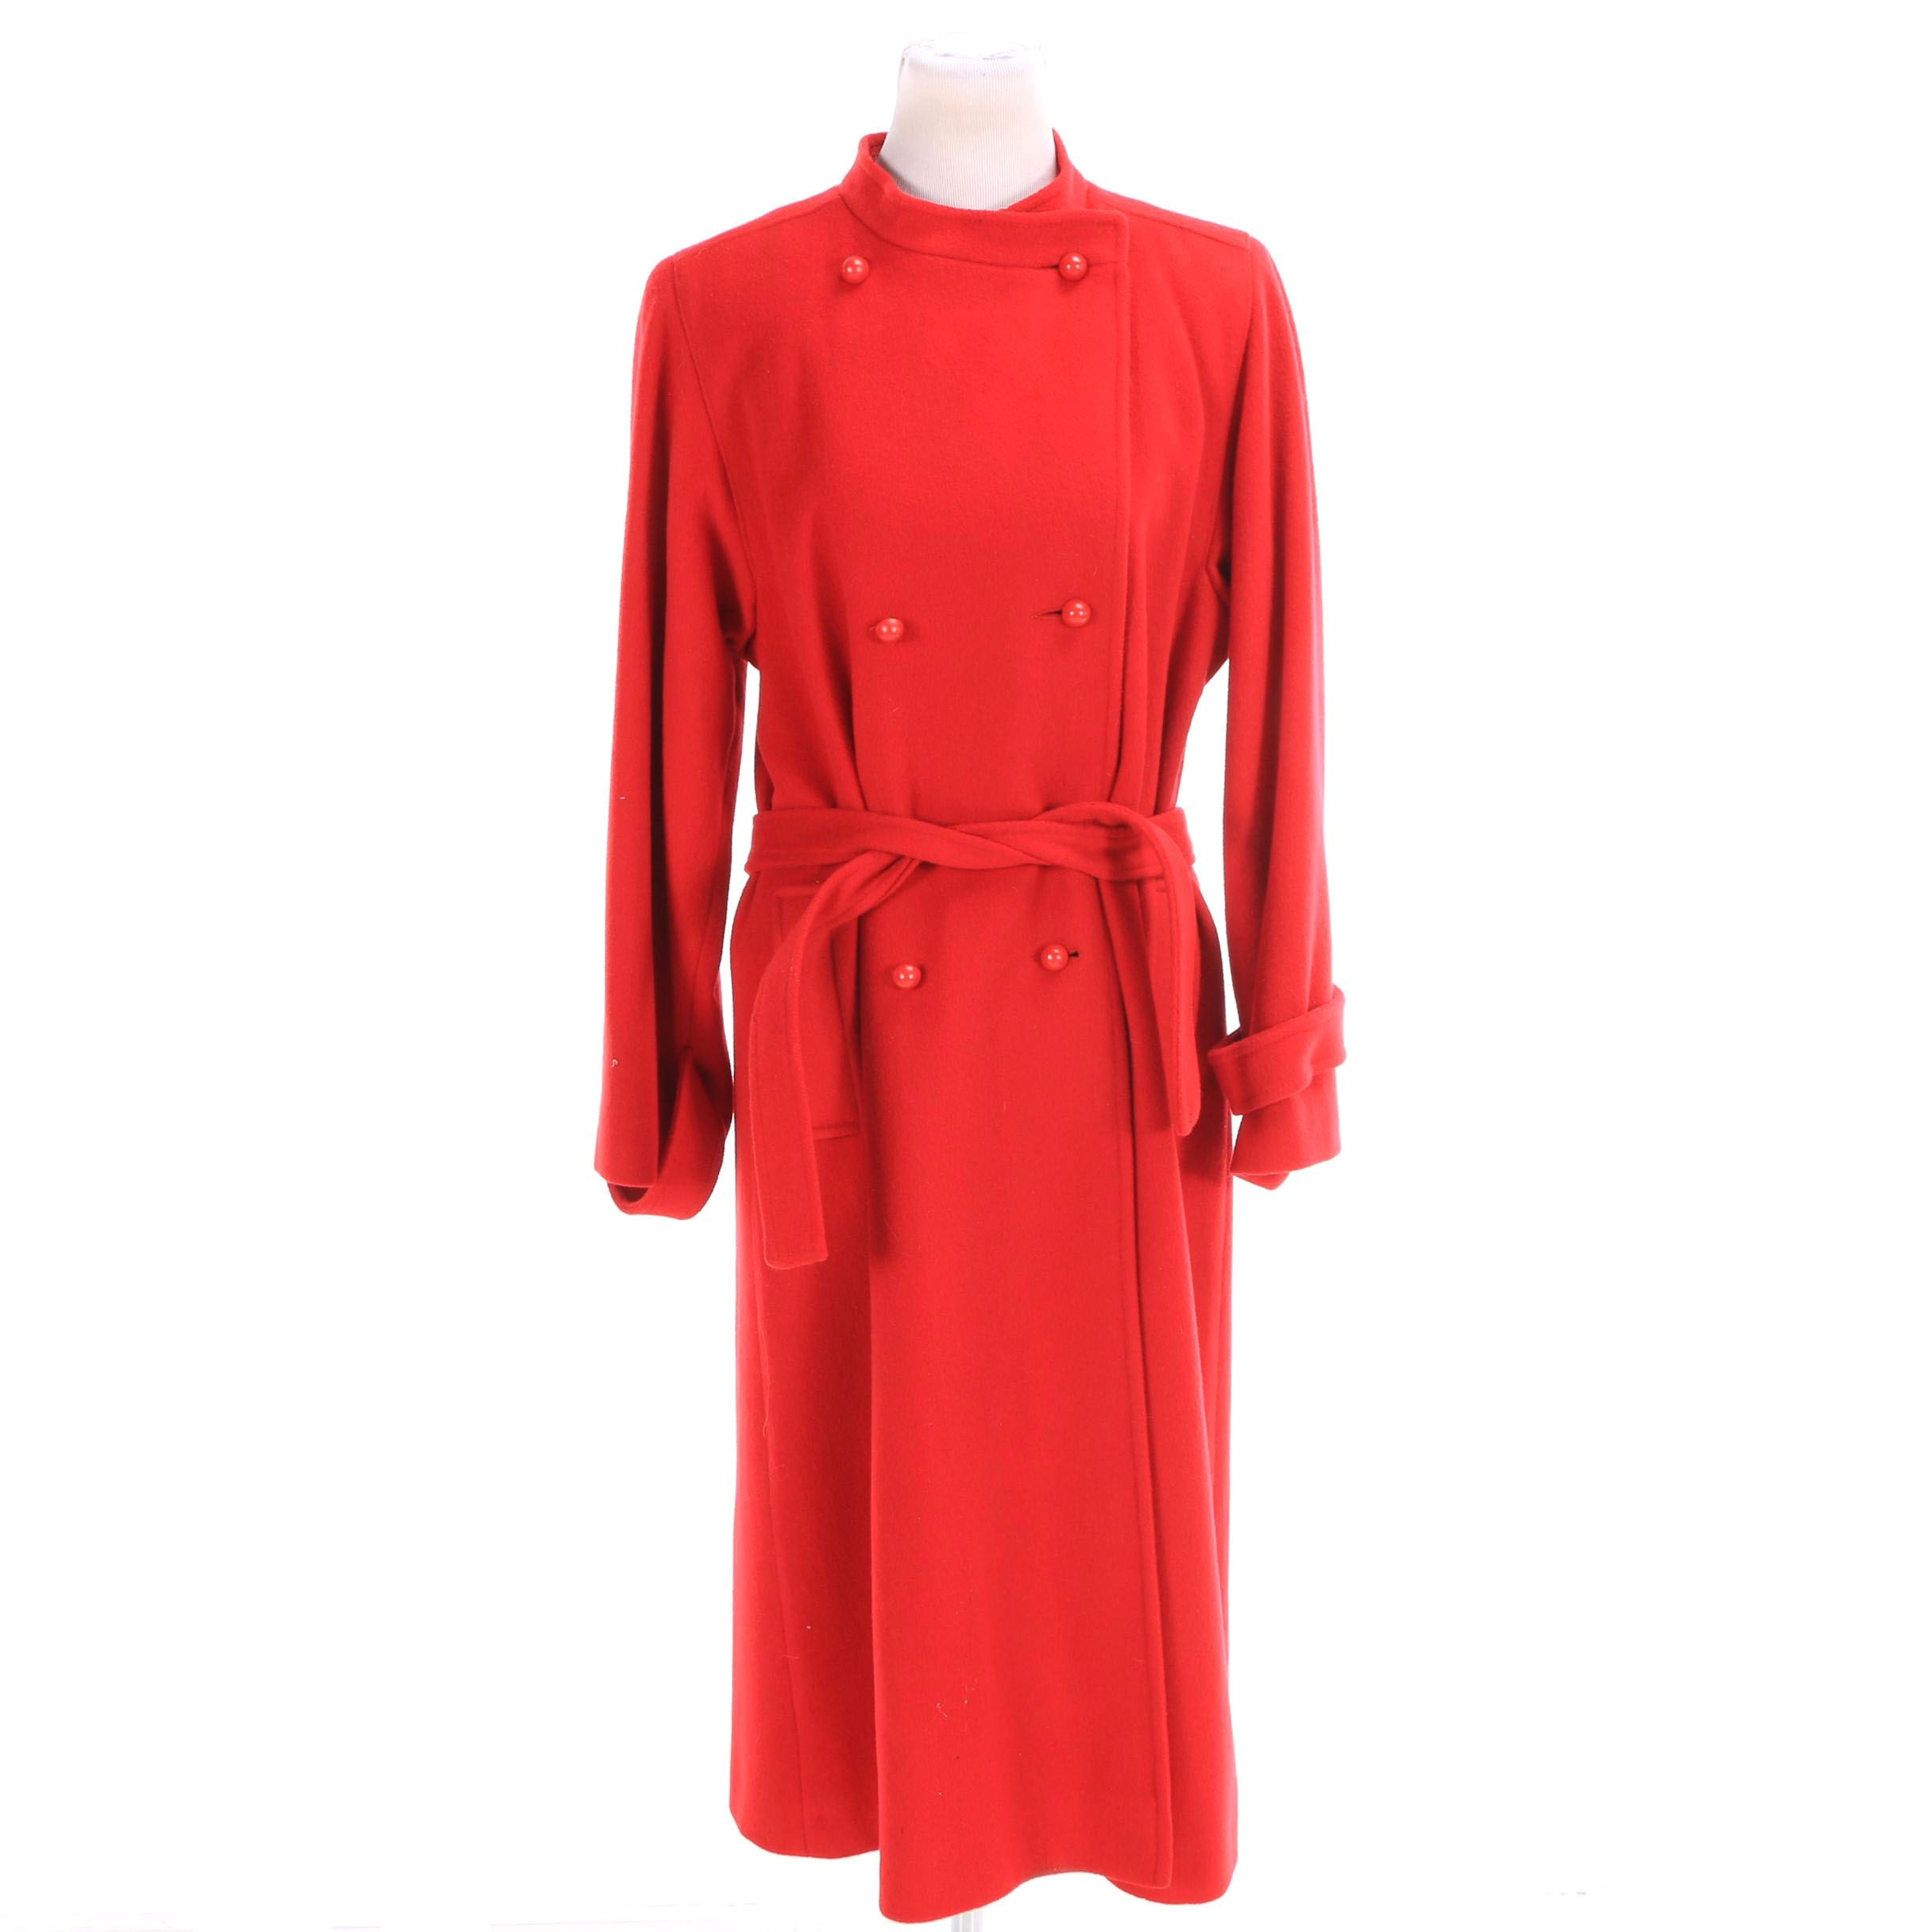 Women's Vintage Mr. Fred Double-Breasted Red Wool Coat